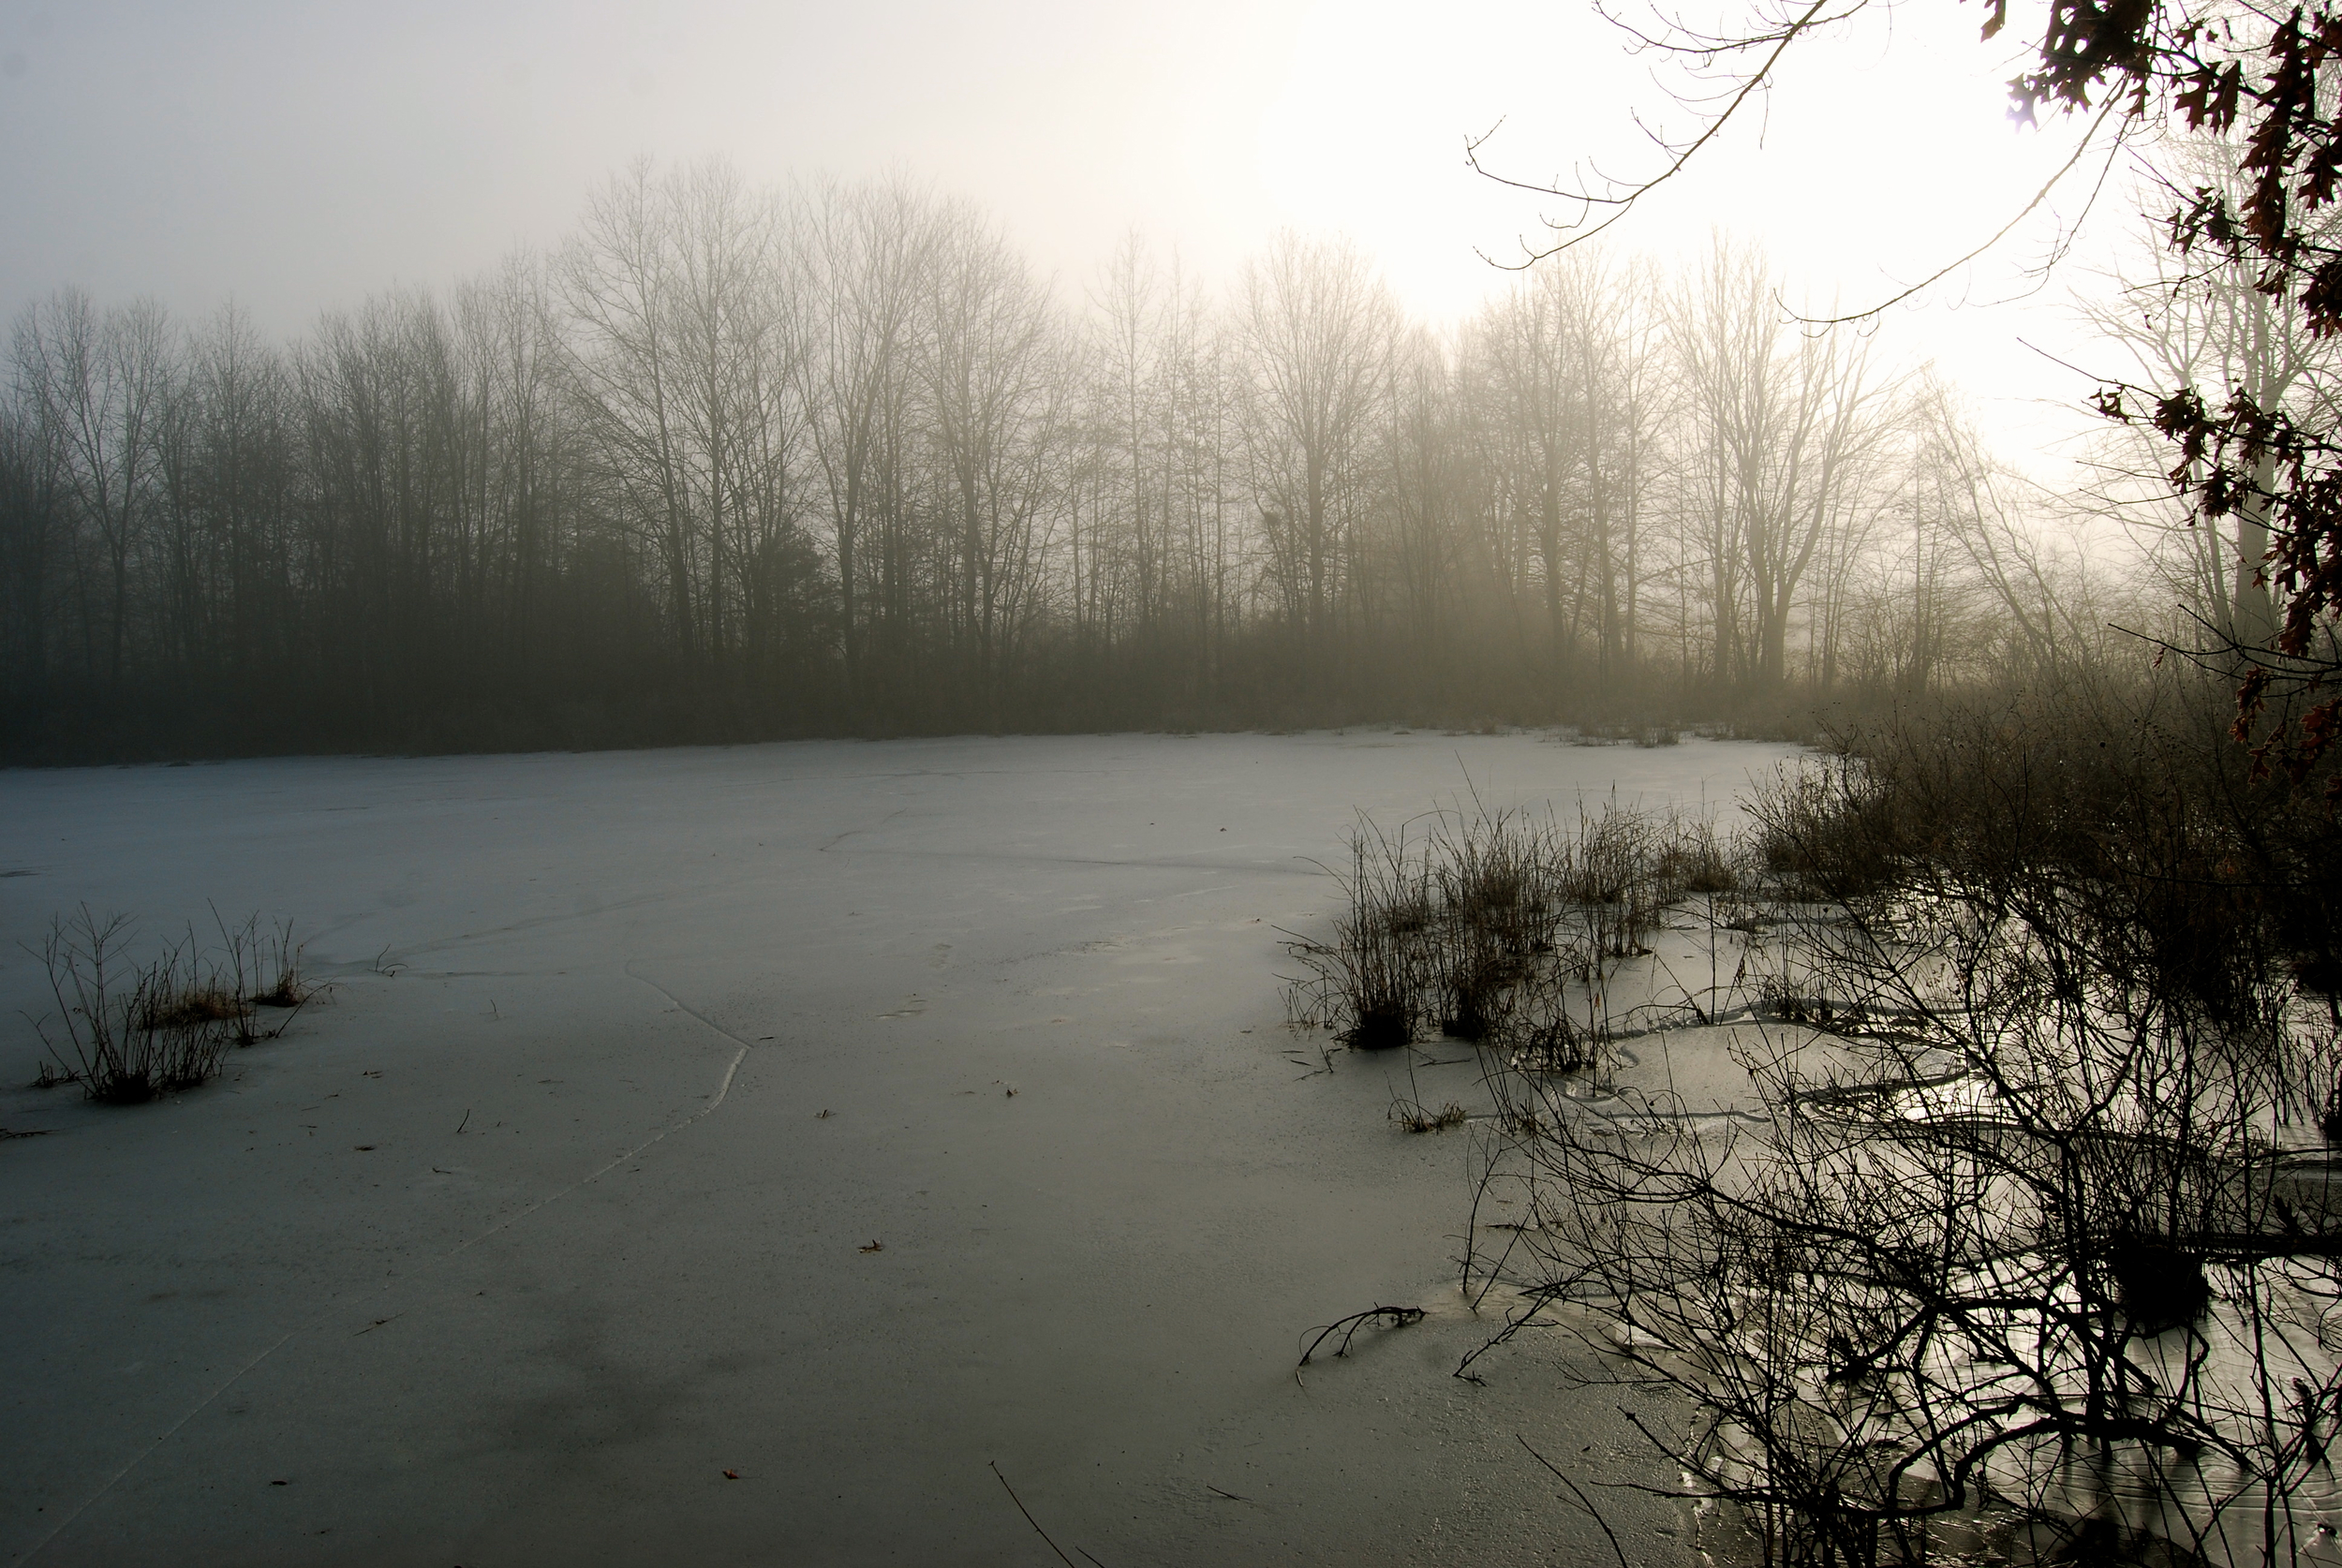 ©Photograph & haiku by Shelita Birchett Benash, 1/15/14  Pointed foot steps dance  cracking the ice on the pond  she dances her death